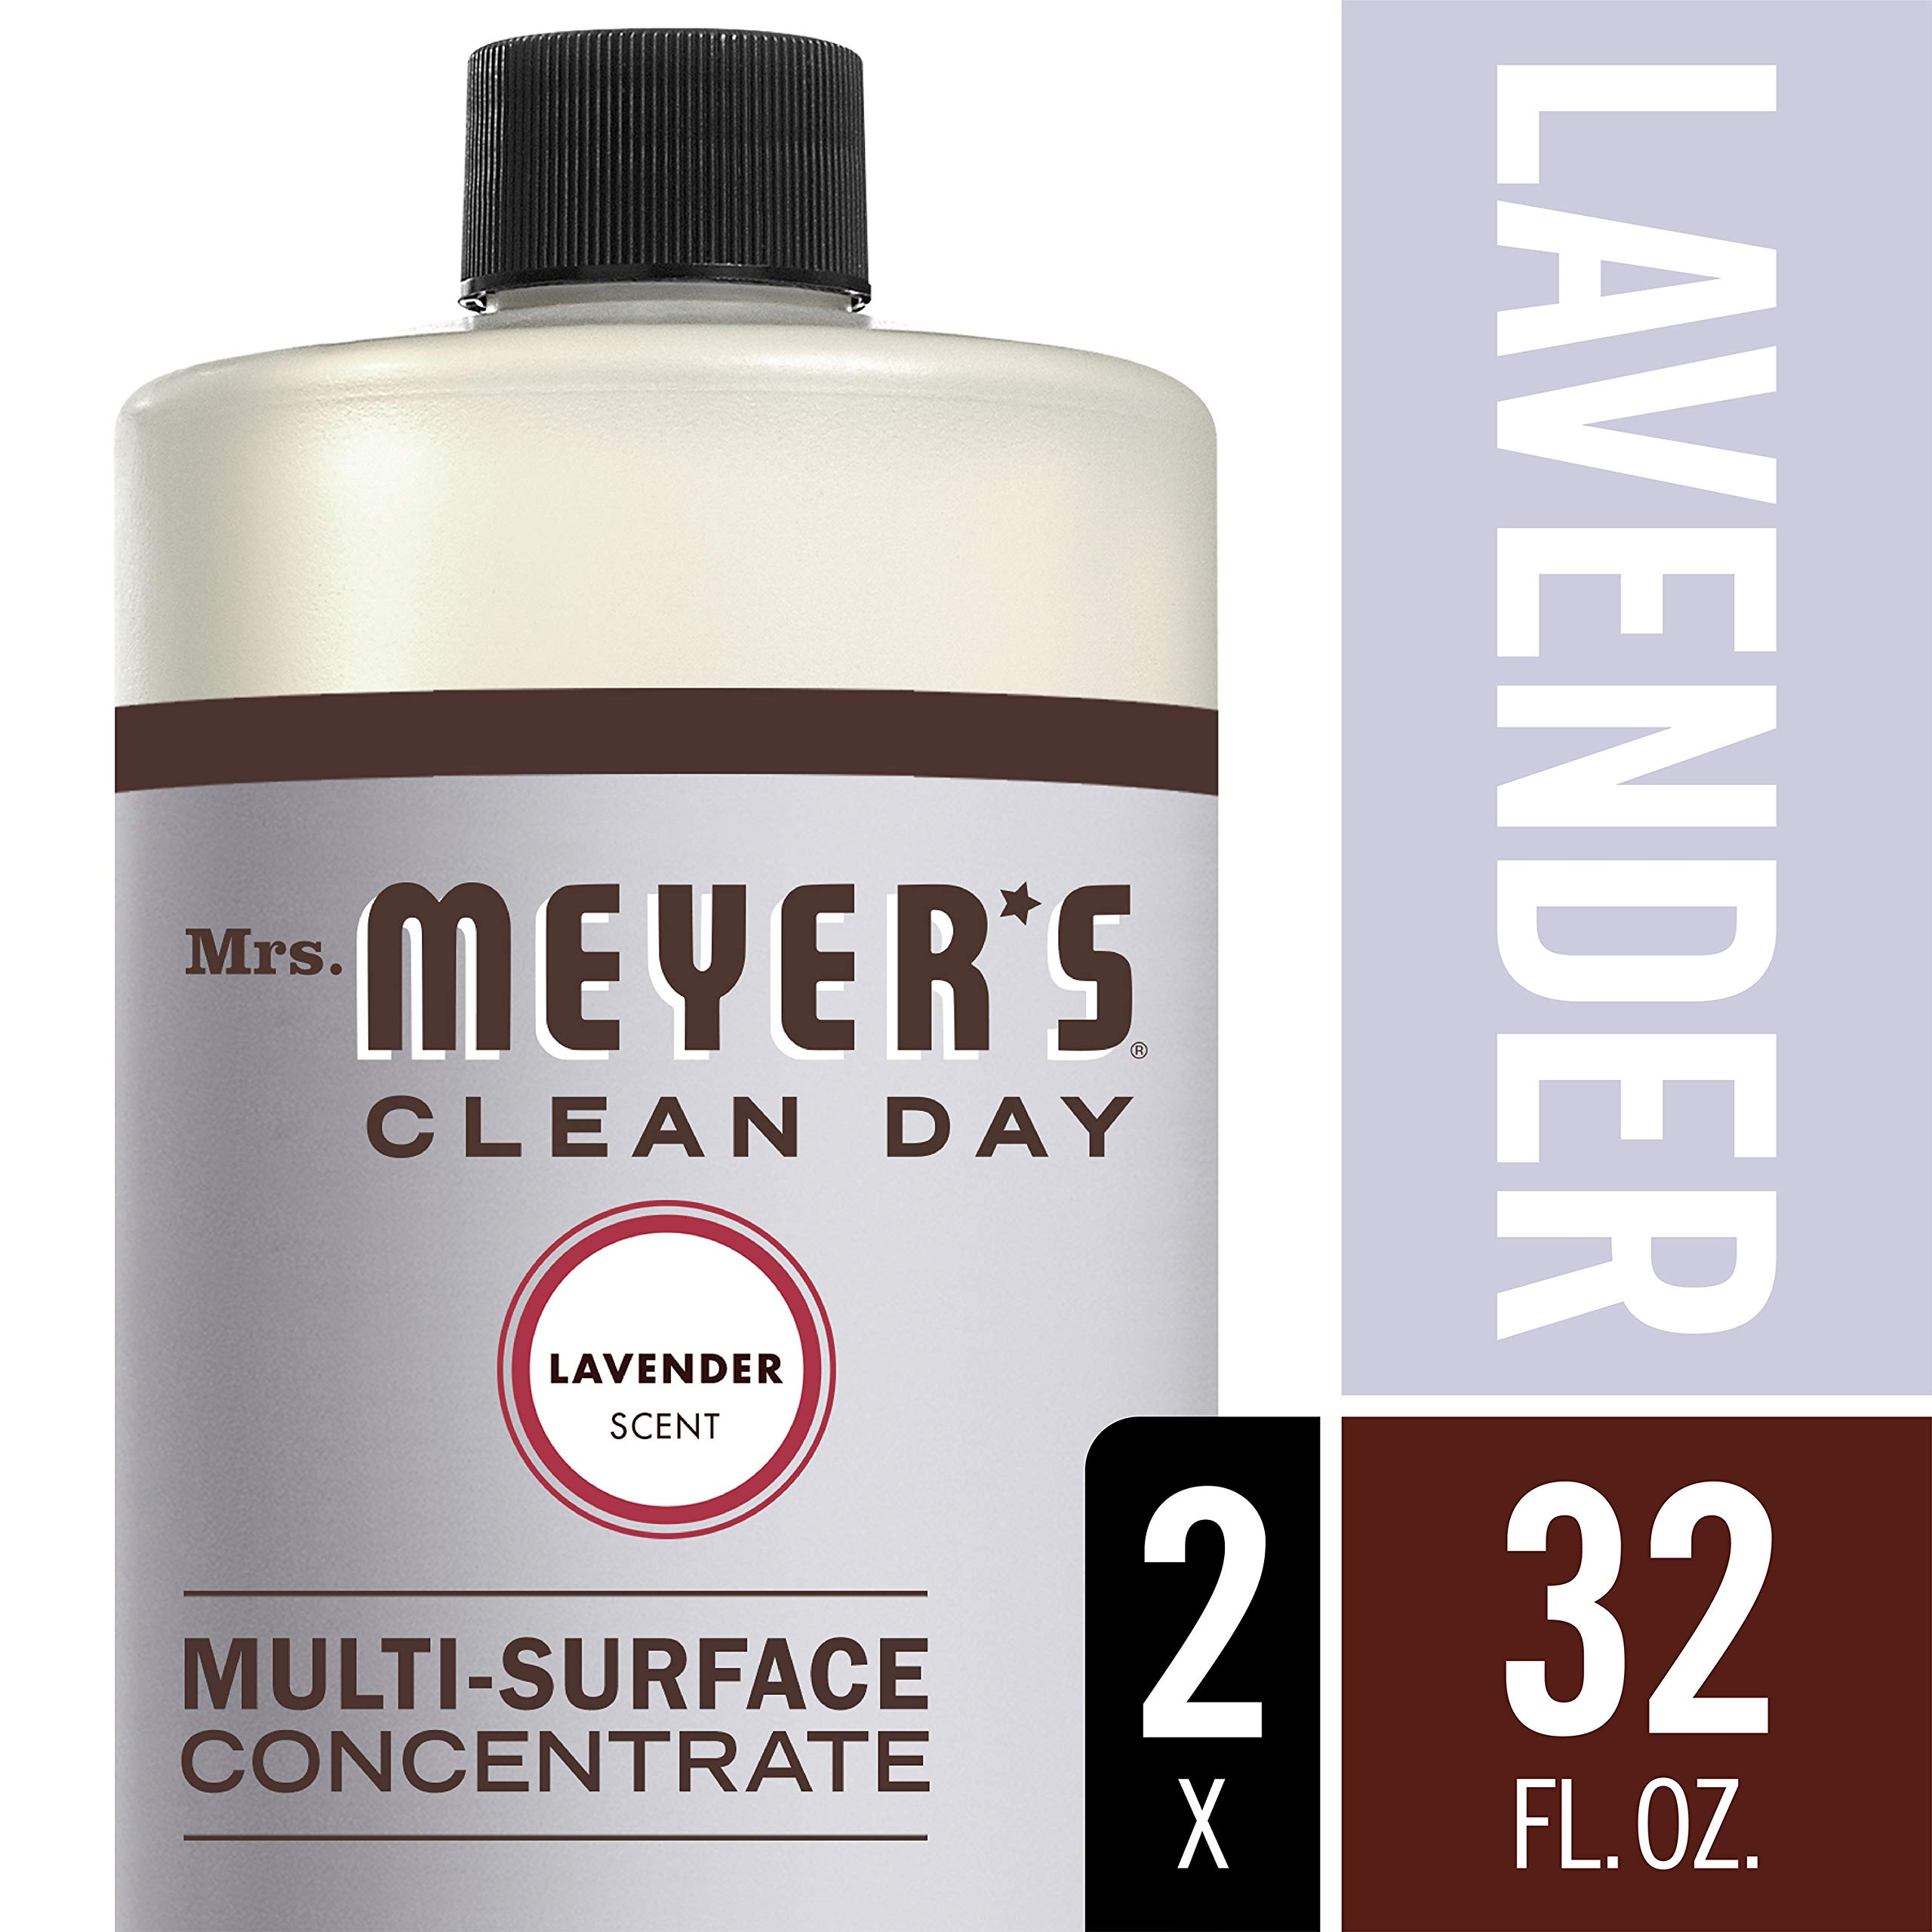 Mrs. Meyer's Clean Day Multi-Surface Concentrate, Lavender, 32 fl oz, 2 ct